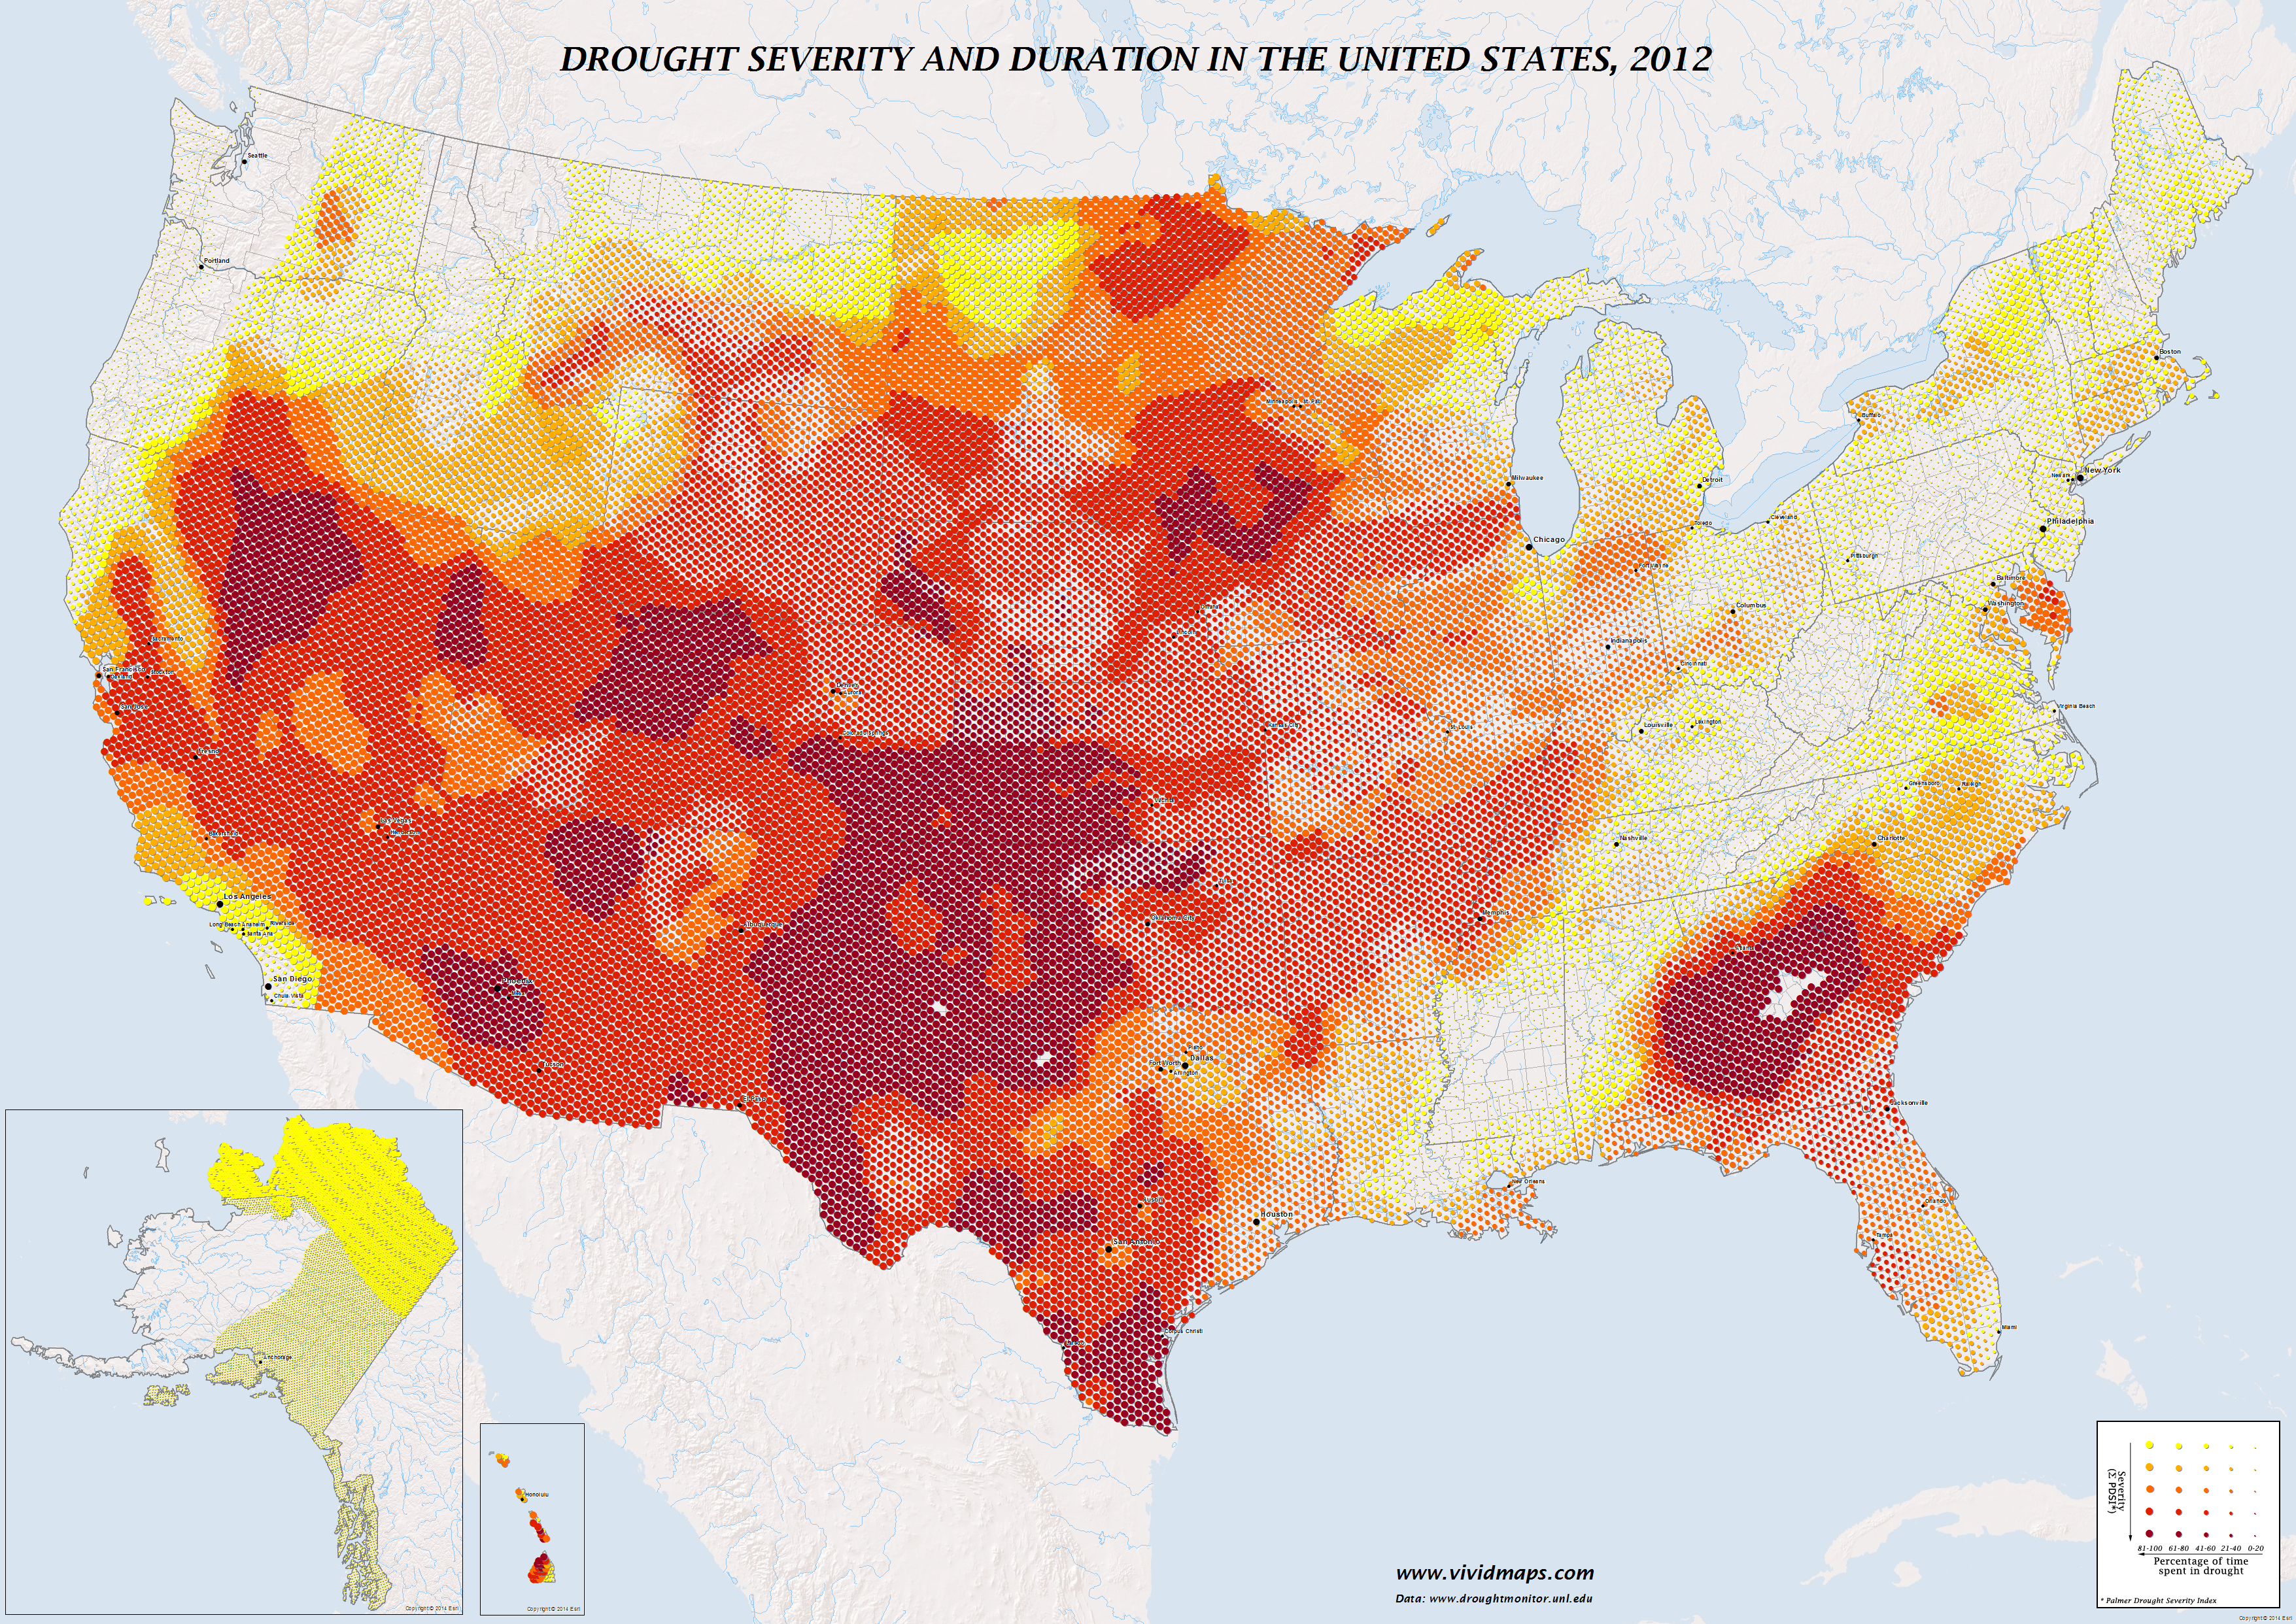 Drought severity and duration in the United States (2012)